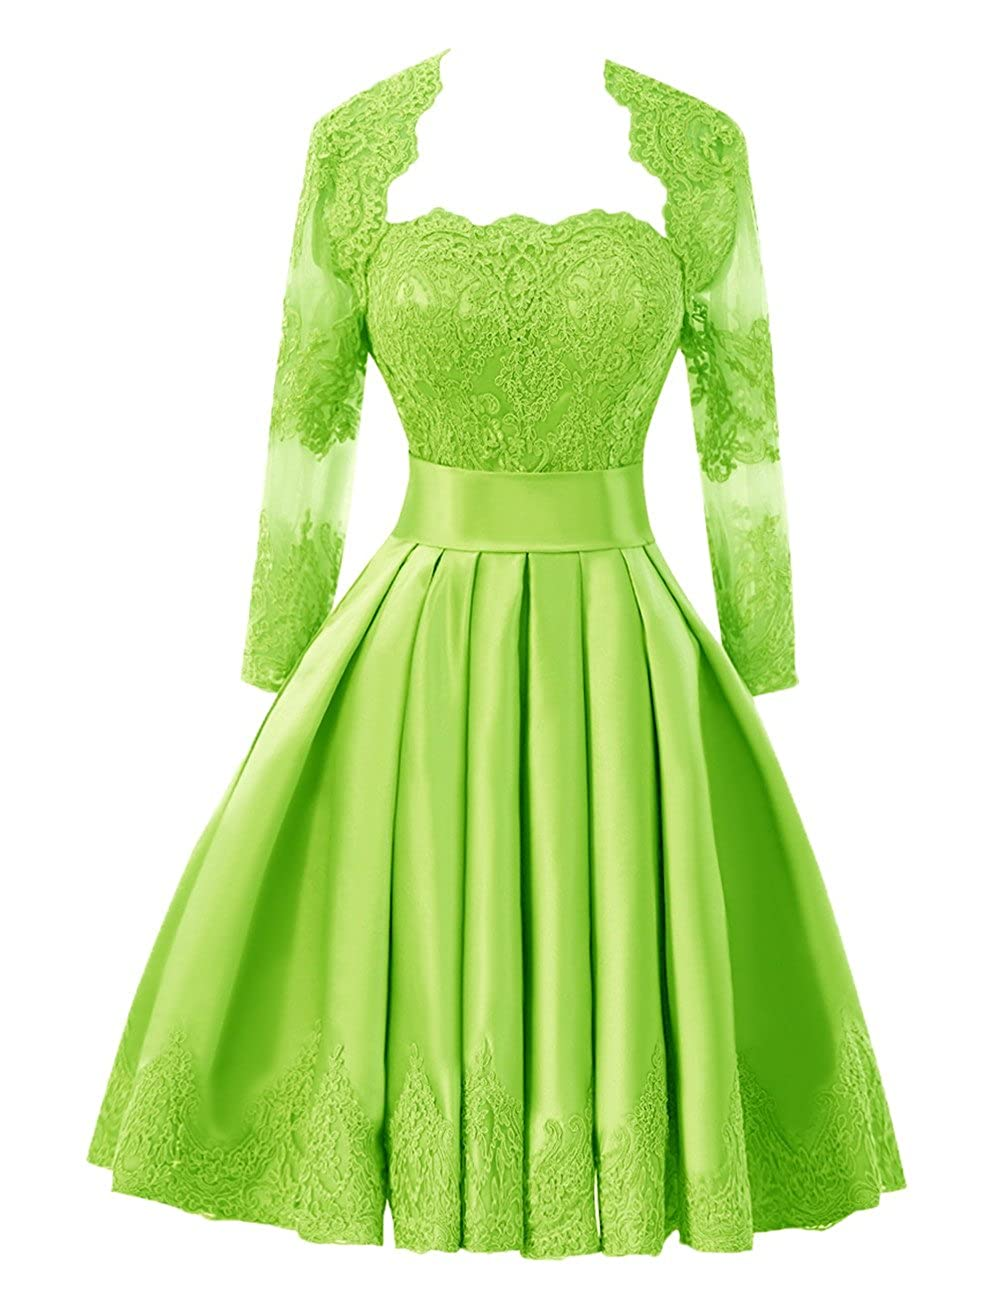 Lime Green Bess Bridal Women's Lace Short Prom Homecoming Dresses with Long Sleeve Jacket